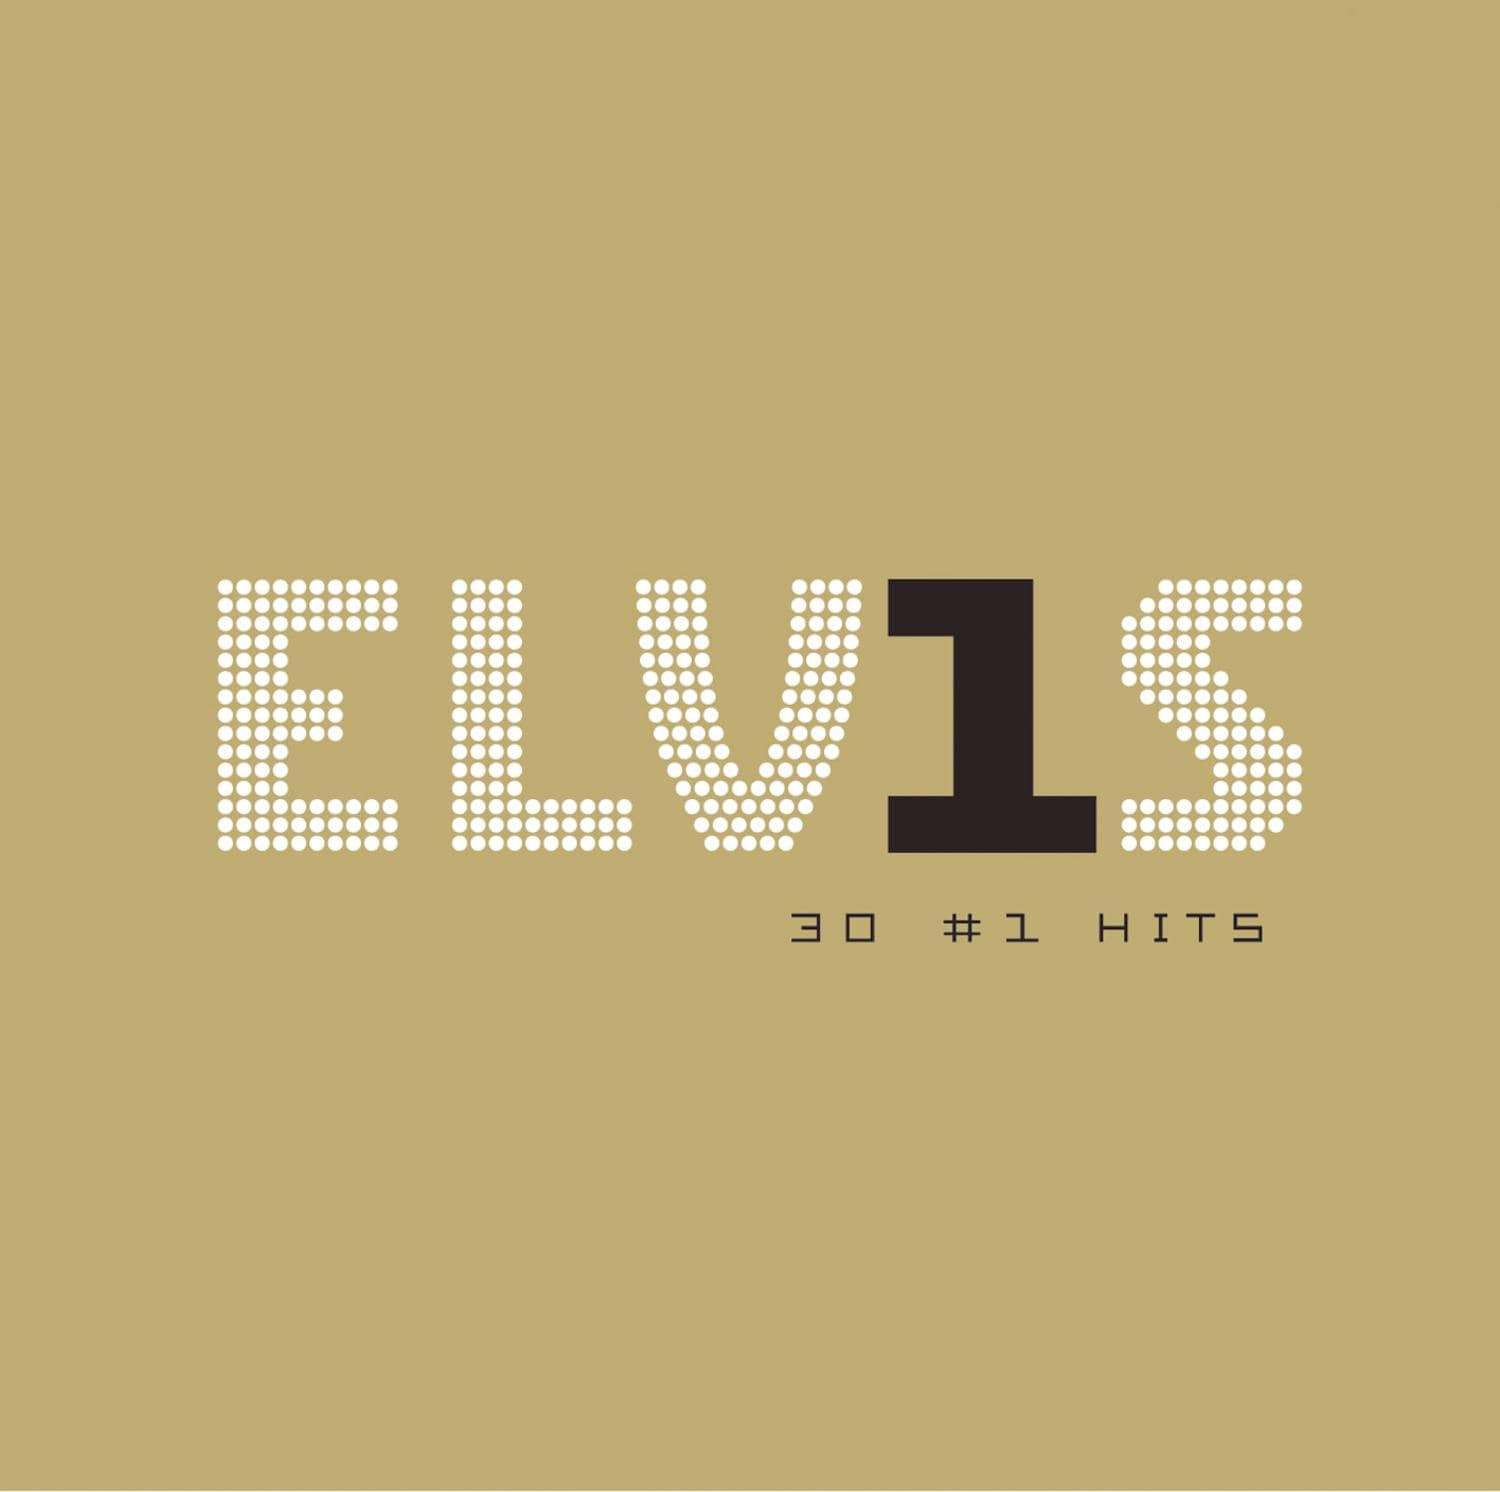 Elvis Presley - Elvis 30 Number 1 Hits